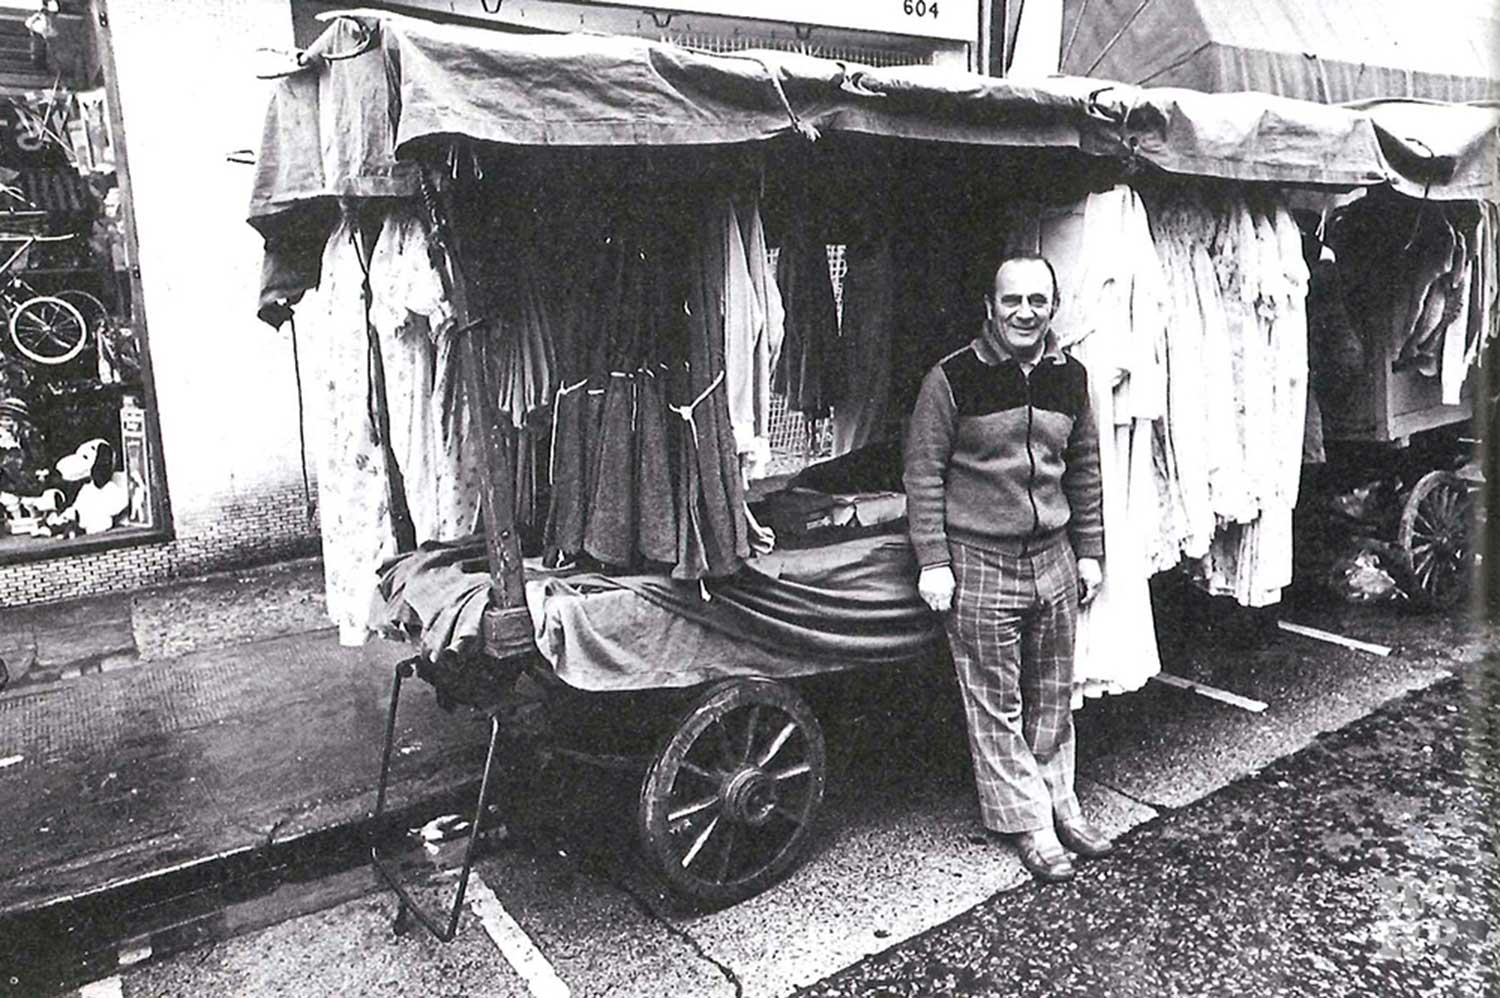 Roman Road Trader Harry da Costa in the 1970s at his stall on Roman Road